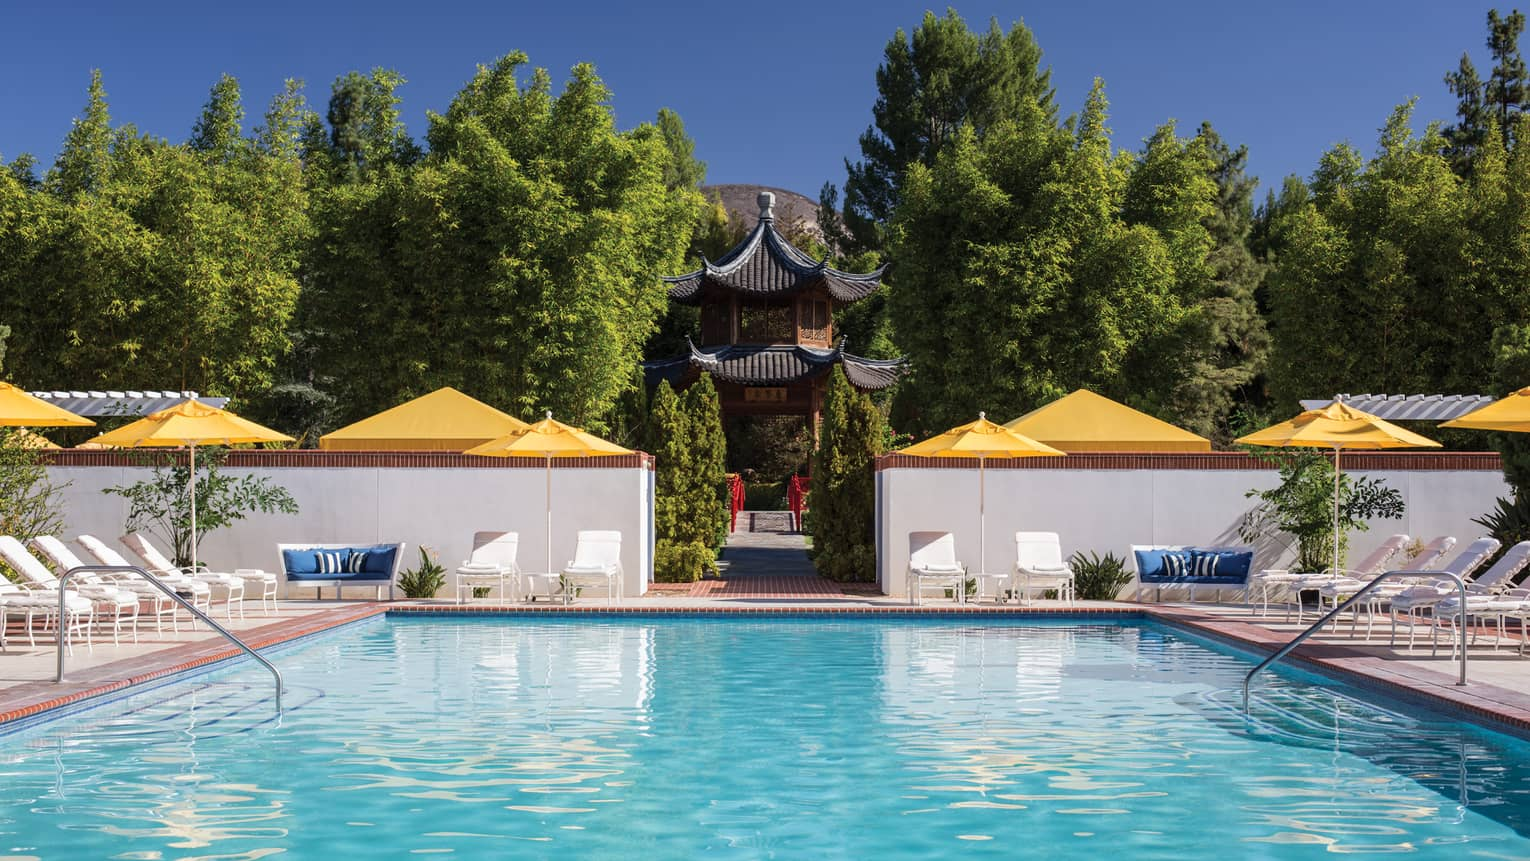 Outdoor swimming pool lined with lounge chairs, yellow umbrellas, path to temple, trees